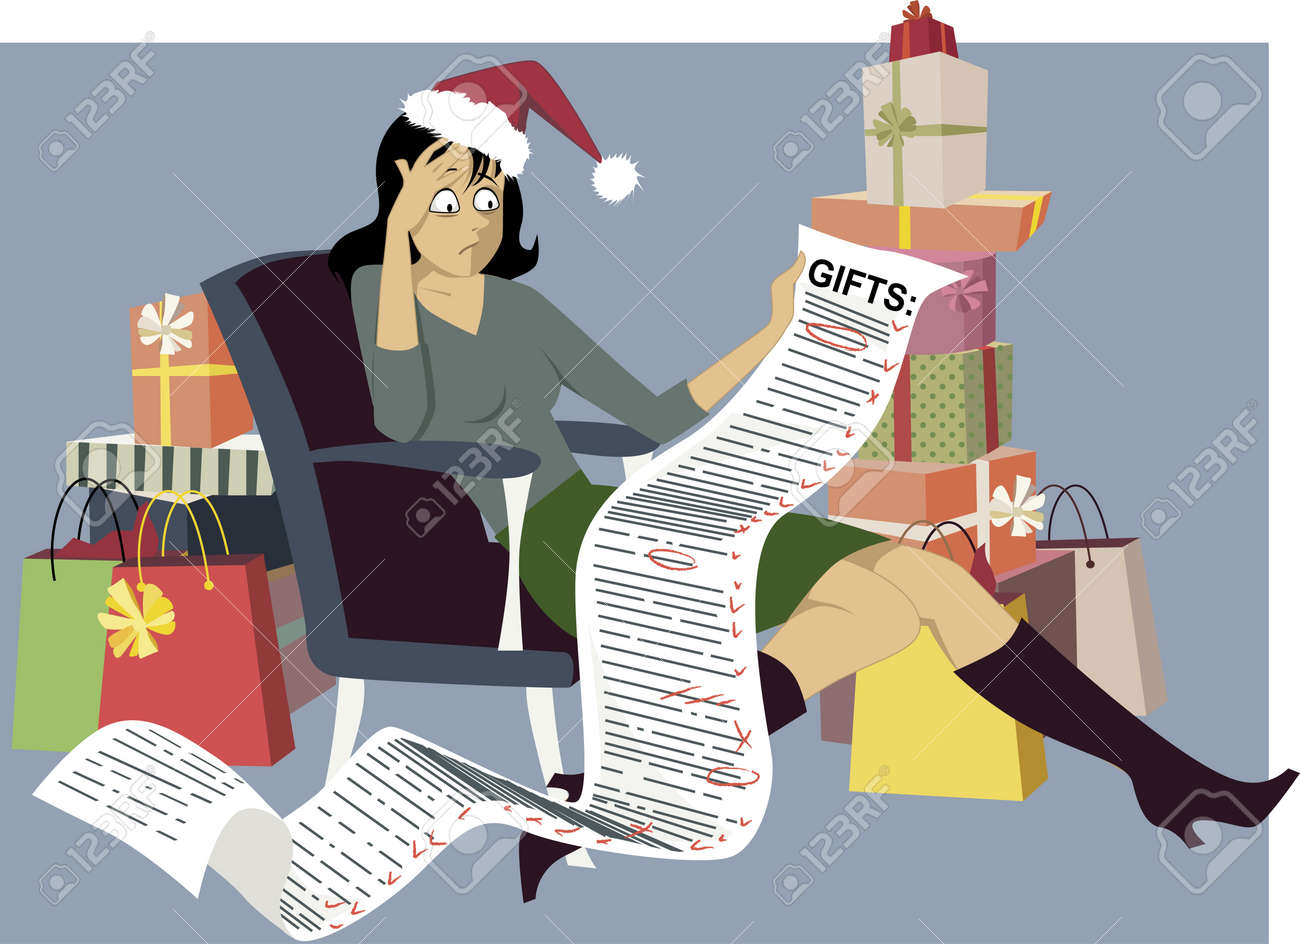 Exhausted woman in a Santa hat sitting with a long shopping list of gifts, surrounded by bags and gift boxes, vector illustration - 45020353